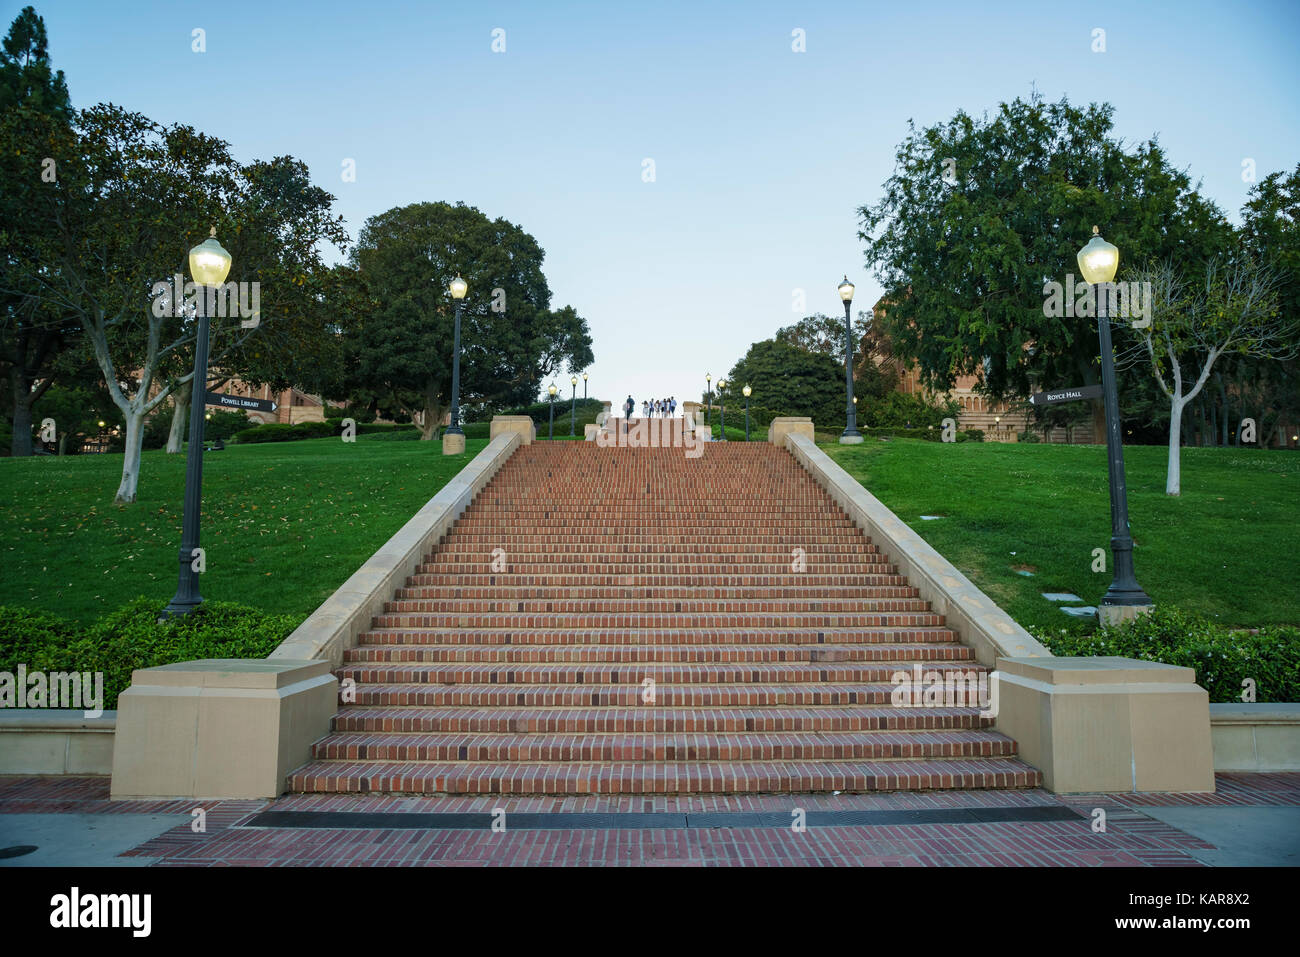 Westwood, JUN 21: UCLA Long Stairs On JUN 21, 2017 At Westwood,